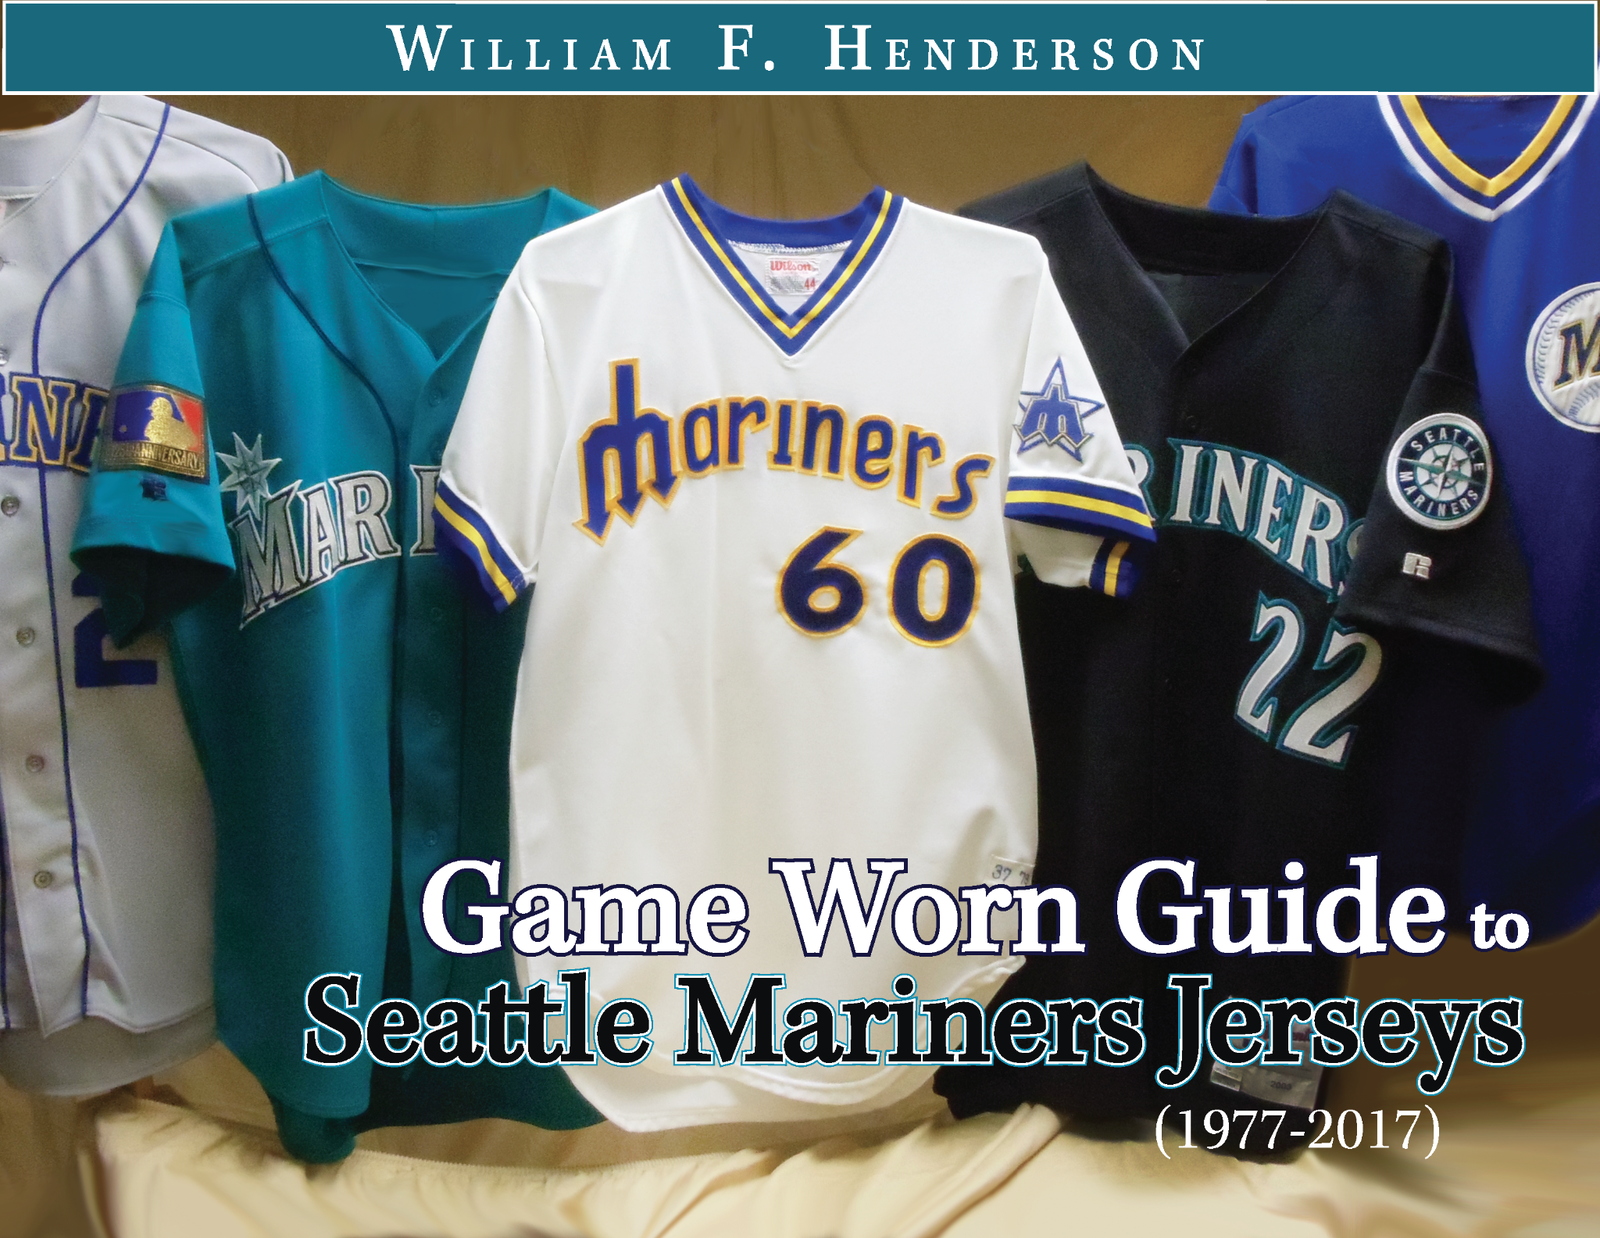 separation shoes 1881d b8896 Game Worn Guide to Seattle Mariners Jerseys (1977-2017) - Game Worn Guides  / William Henderson